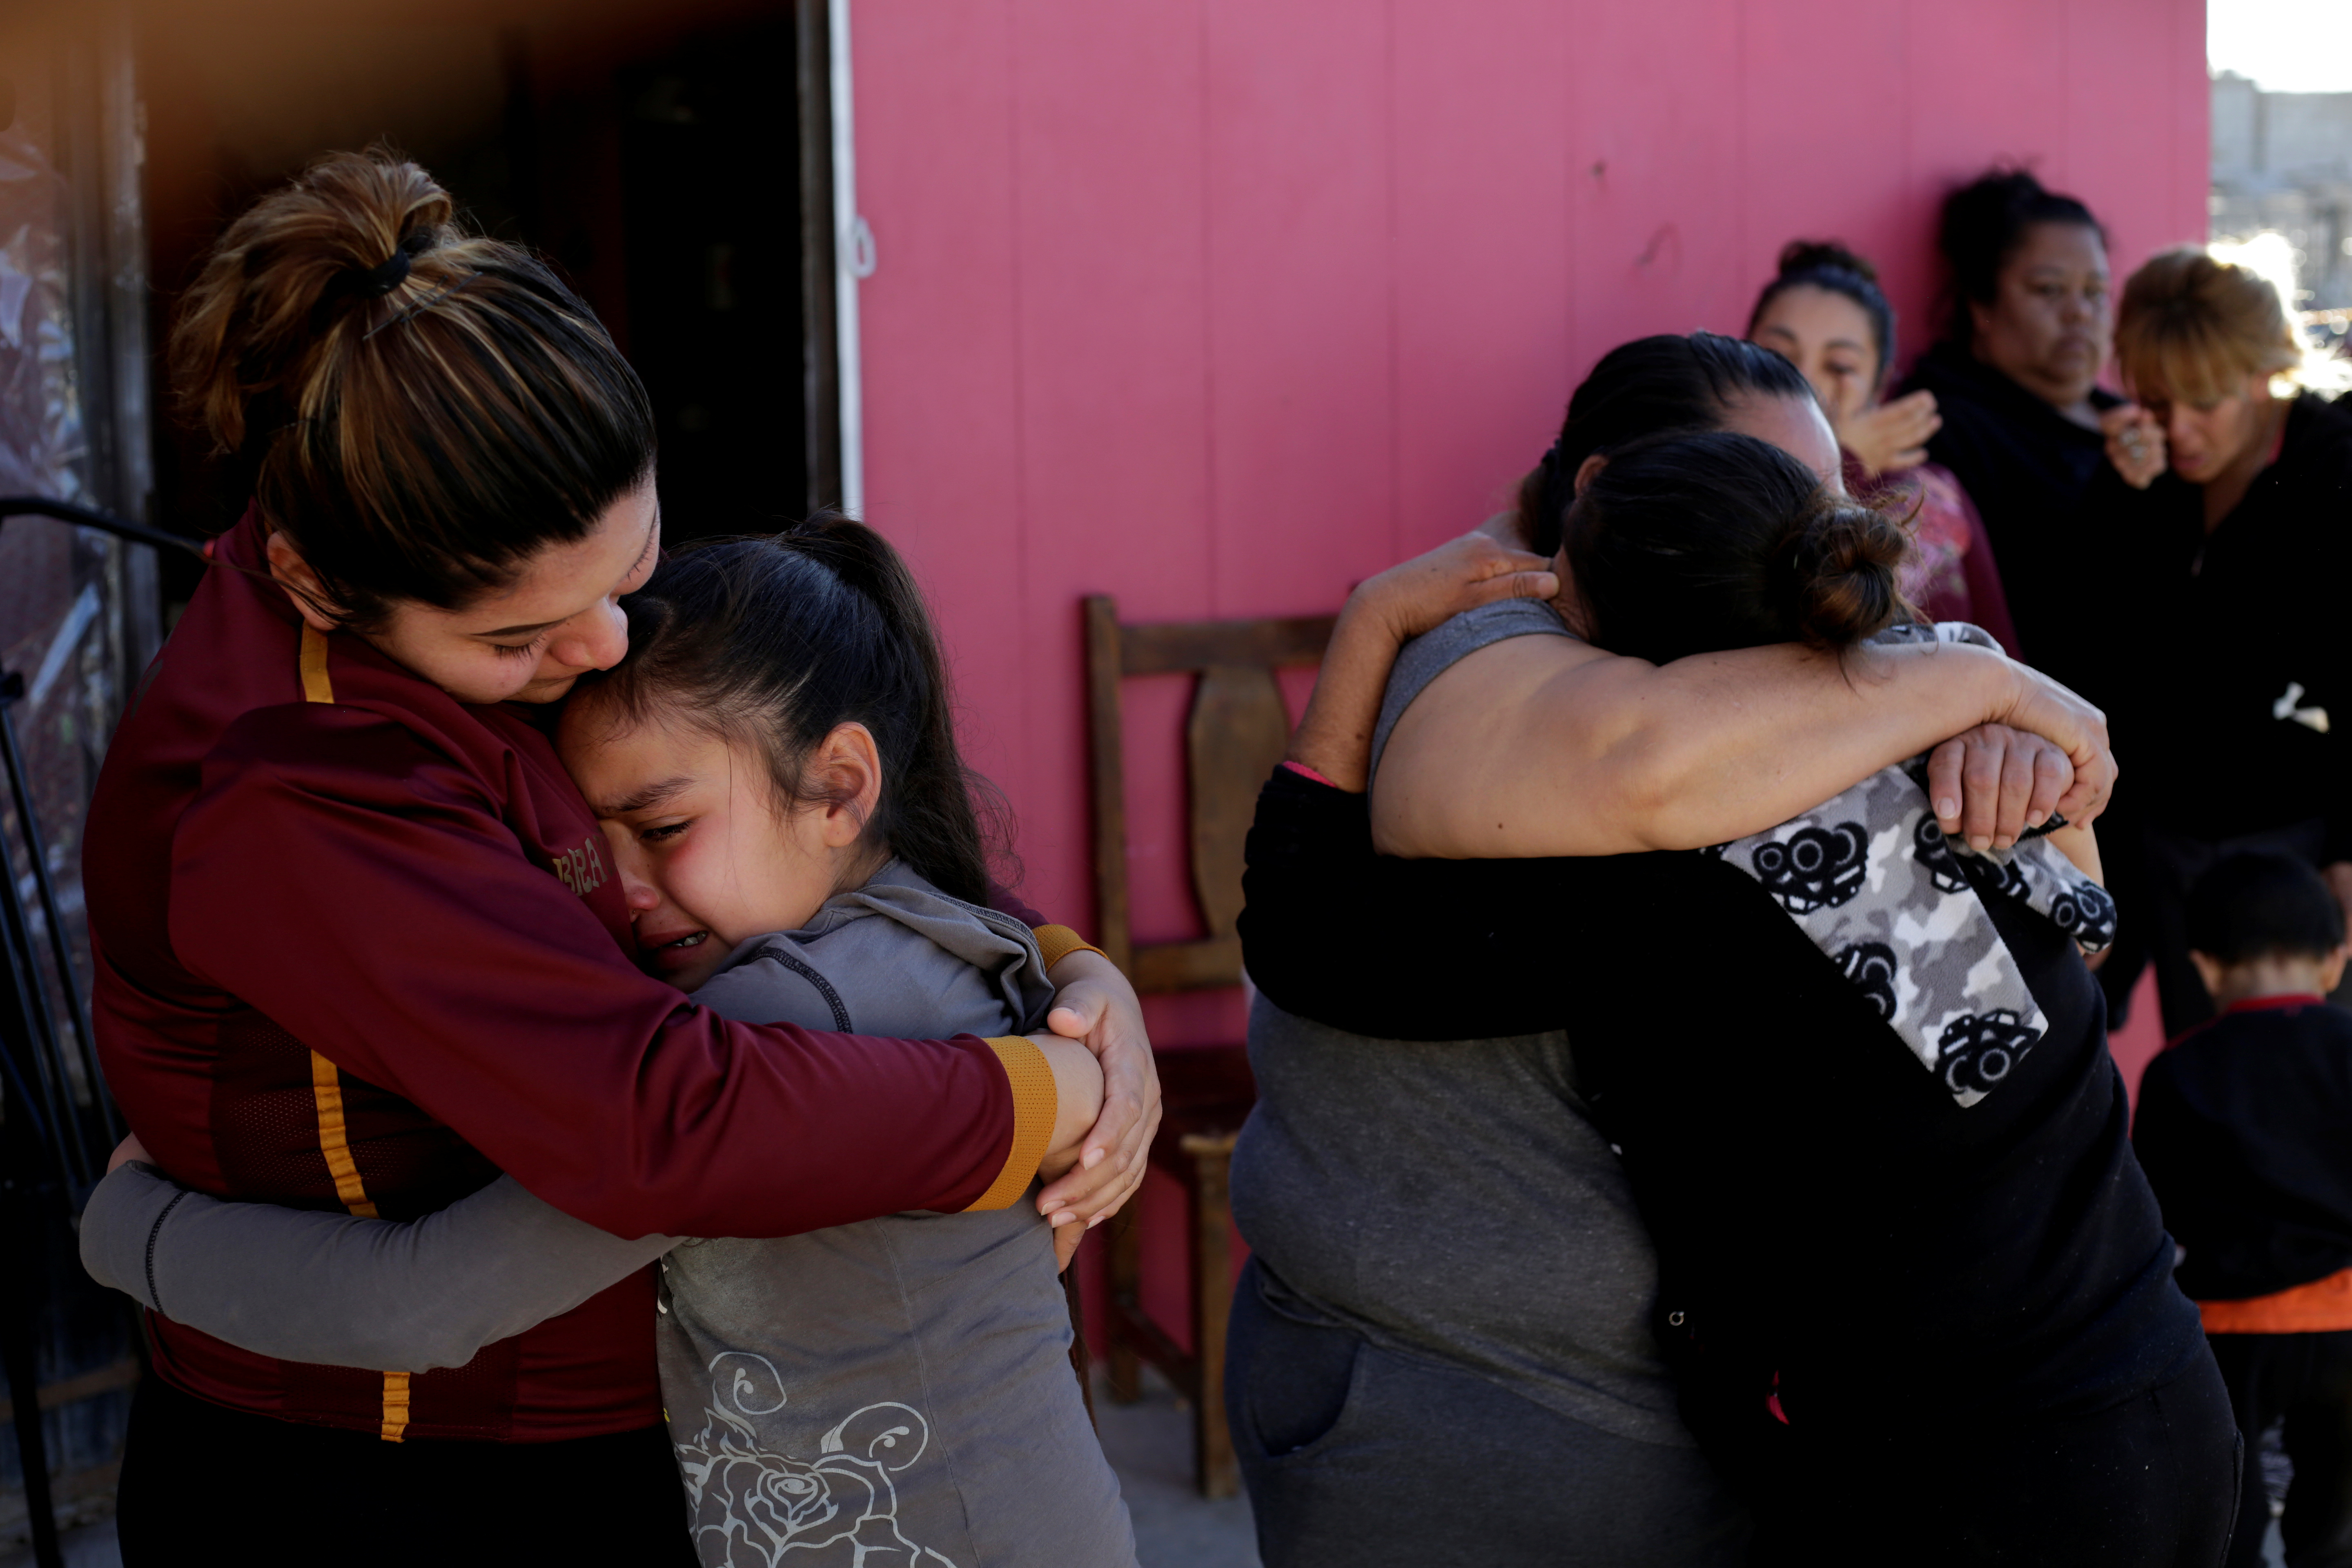 A woman embraces the daughter of Rene Pablo Perez, a Mexican migrant who died at a hospital in El Paso, Texas, after being held by U.S. Customs and Border Protection (CBP), outside her home in Ciudad Juarez, Mexico March 19, 2019. REUTERS/Jose Luis Gonzalez